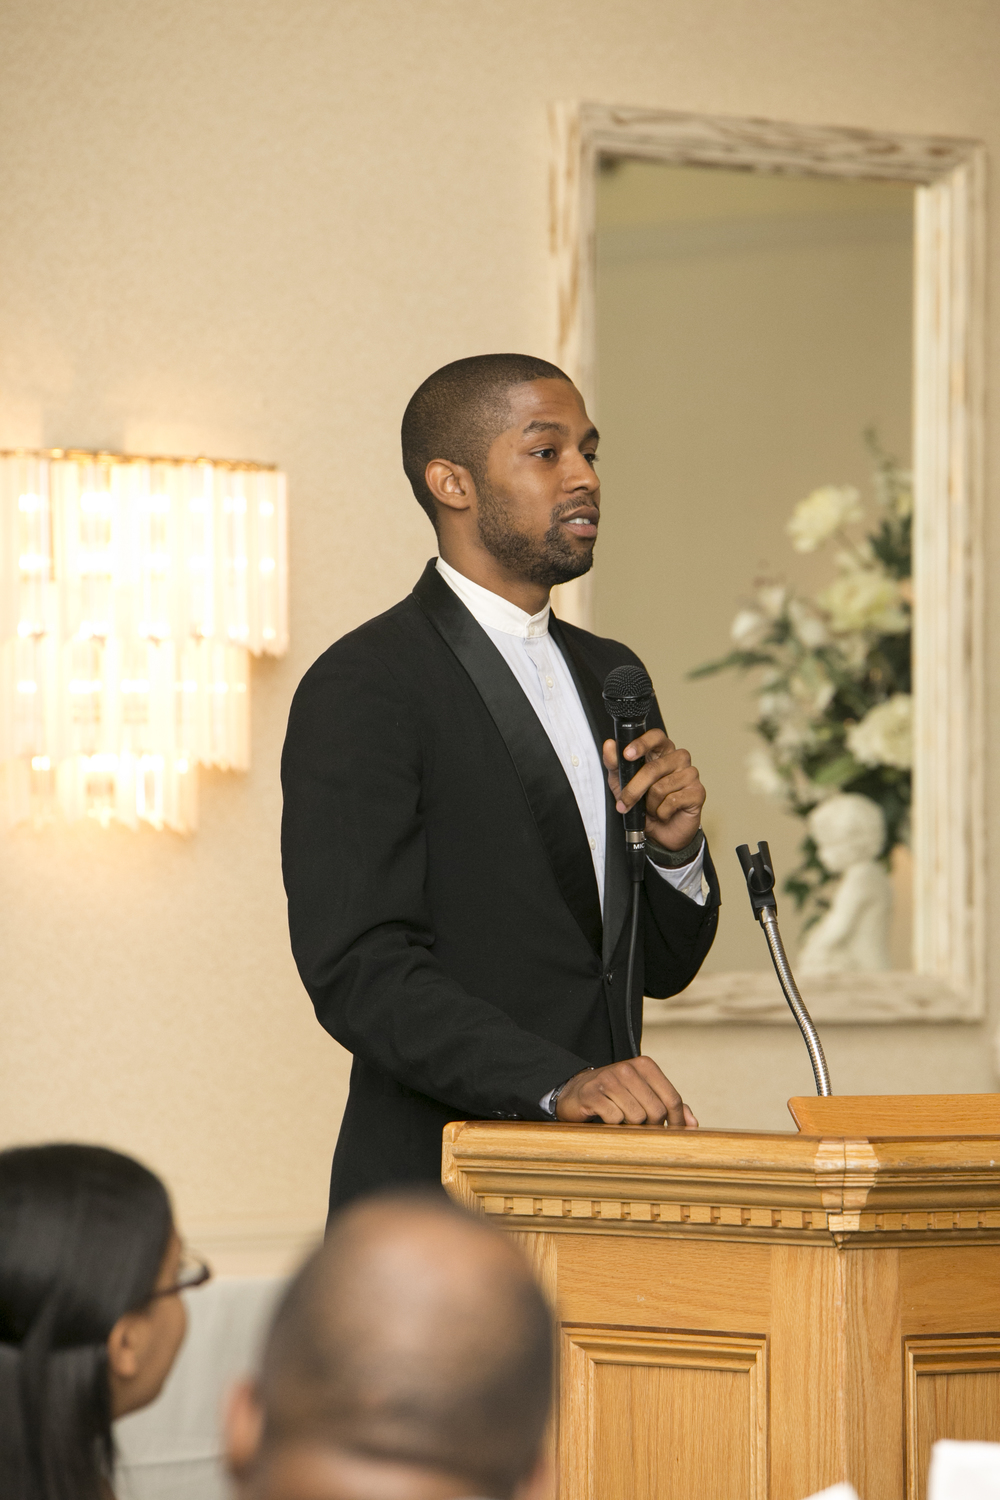 Travon Jackson speaking at Sponsor-A-Scholar's 2015 Graduation Celebration